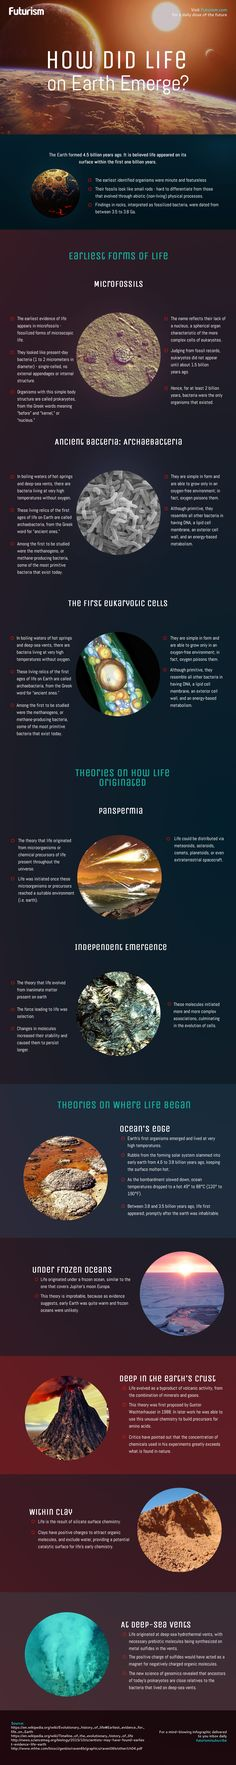 There's a lot that we don't know about the origins and evolution of life on our planet. But there's a lot that we do know.